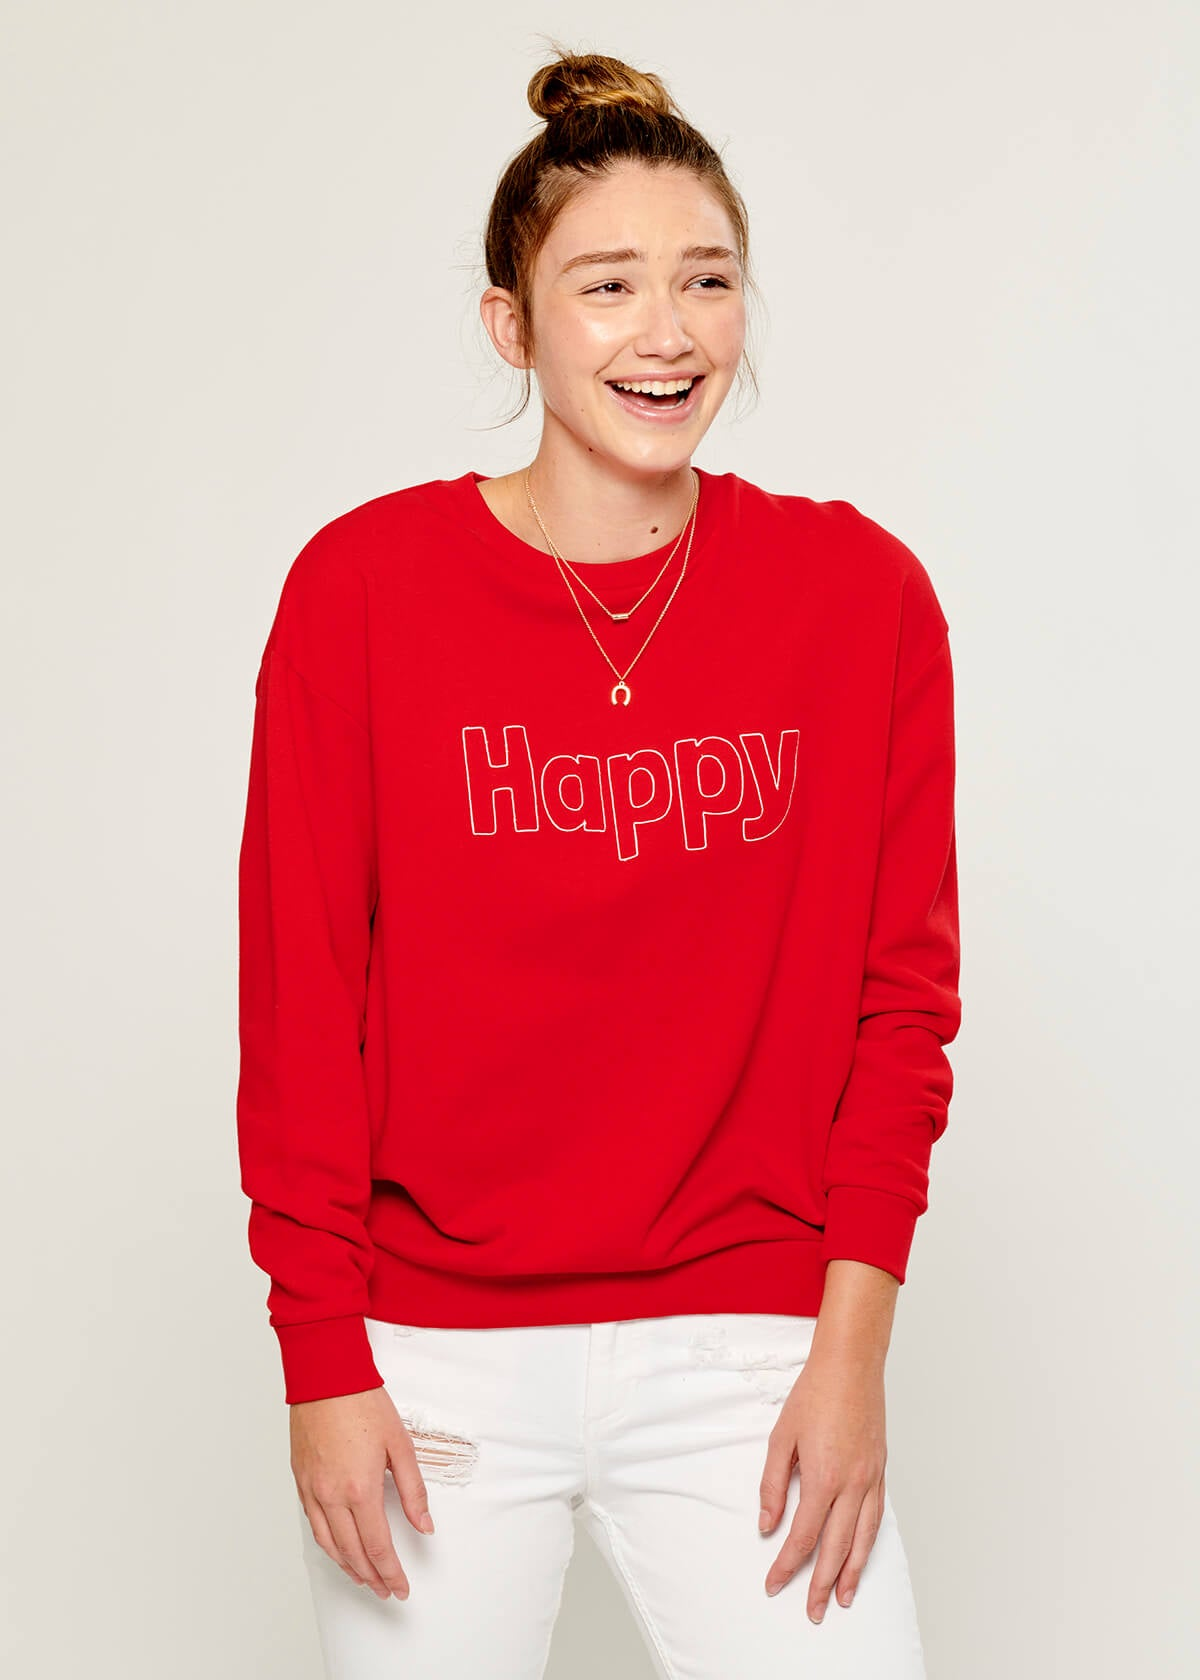 Rocky - Sweatshirt - Happy - Red